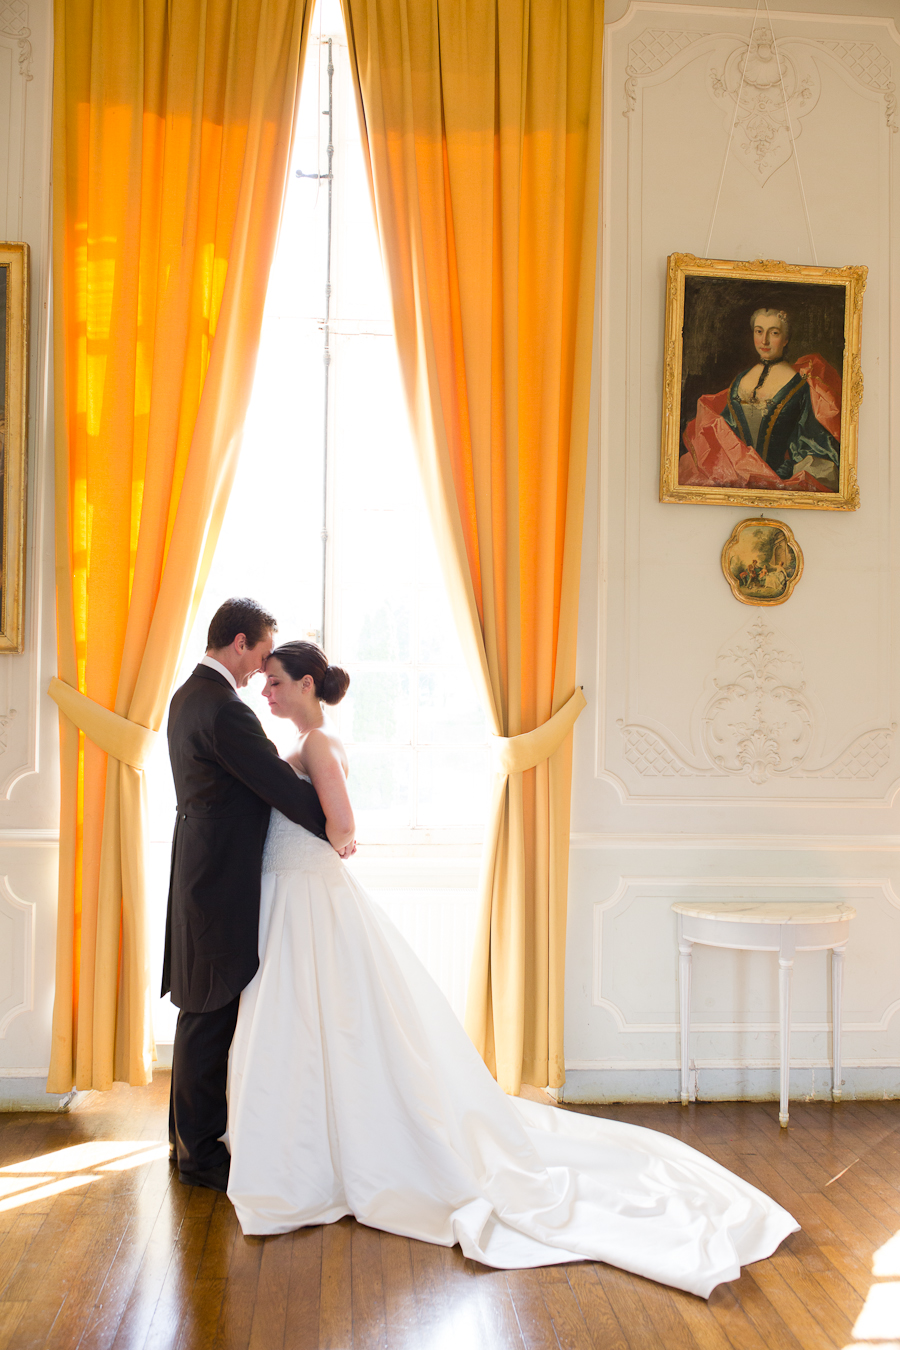 mariage-chateau-orvillers-sorel-keith-flament-36